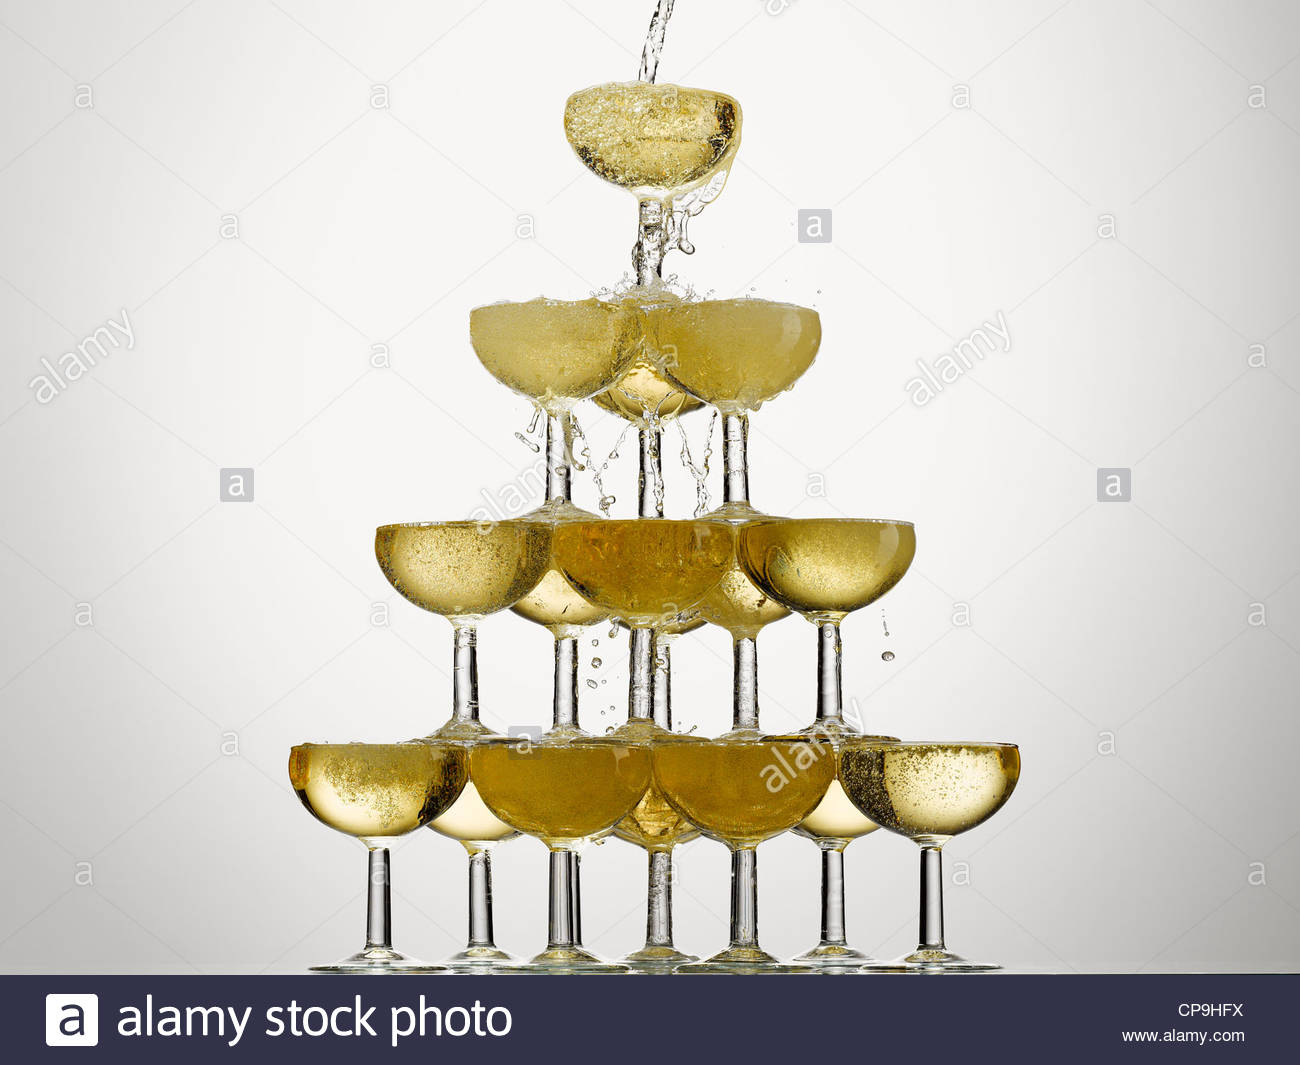 abundance,bubble,celebration,champagne,champagne glass,color - Stock Image